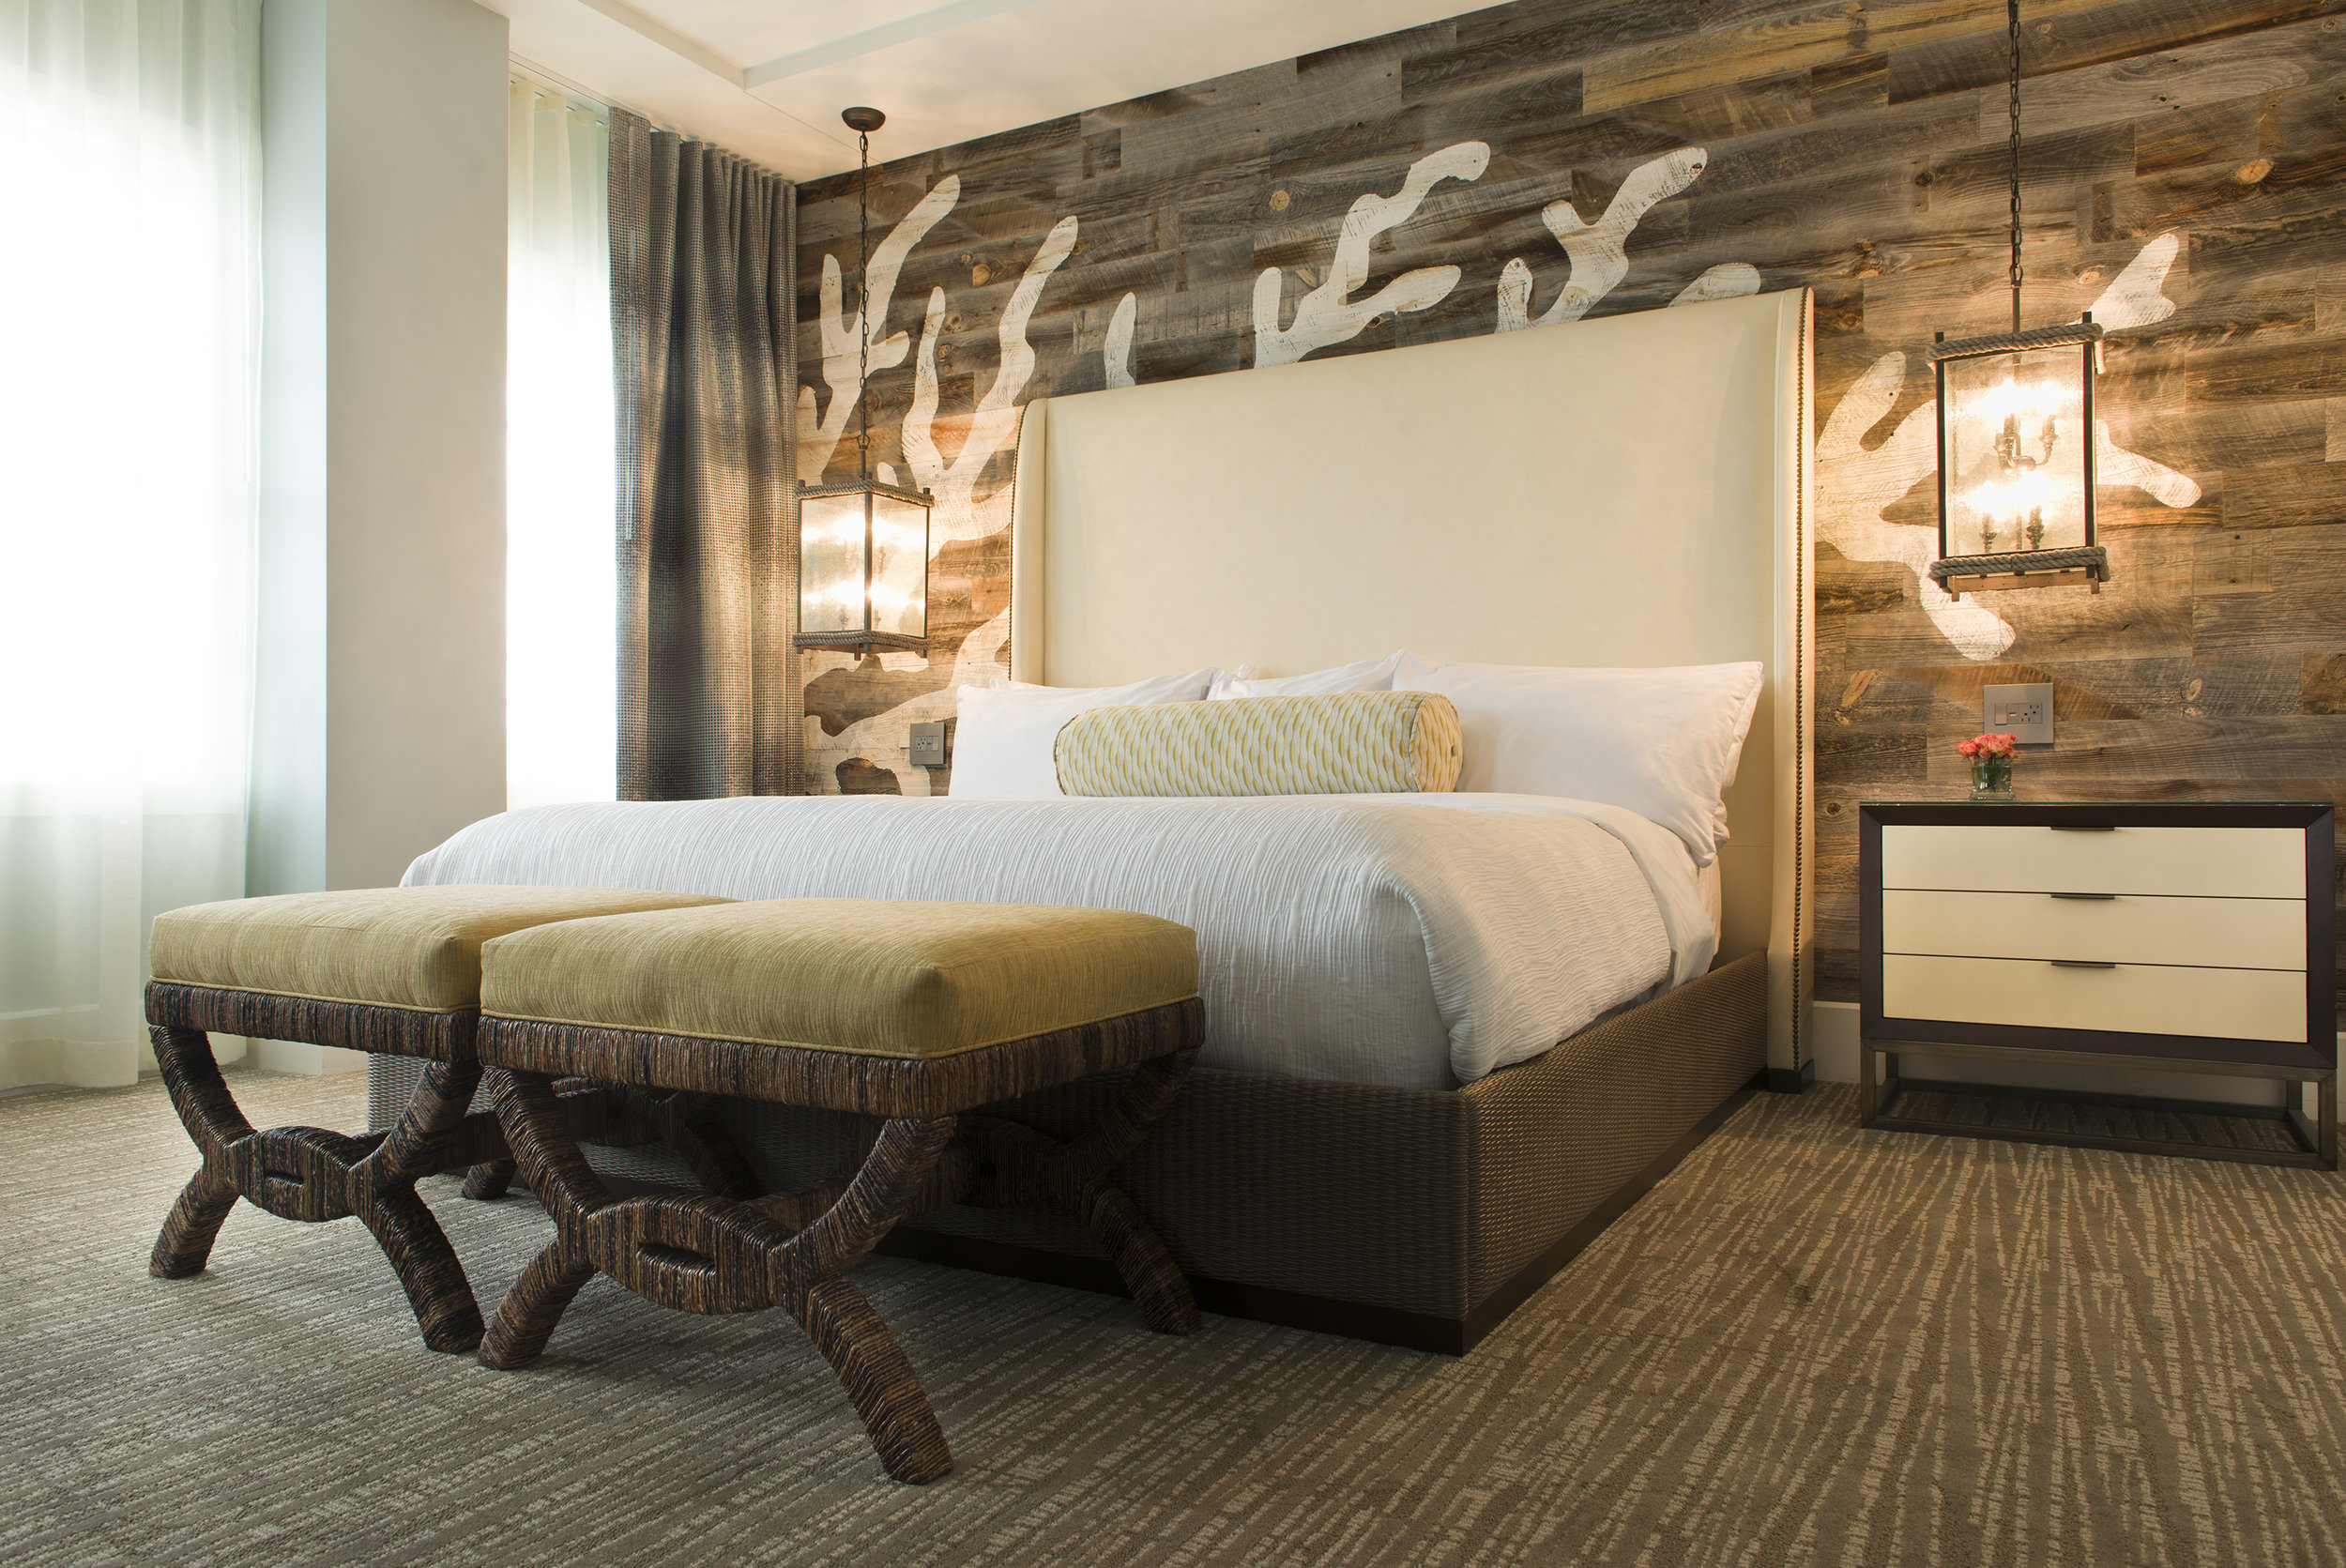 Master Guest Room at Margaritaville Island Hotel, in Pigeon Forge, TN, Designed by Design Poole, Inc in Winter Park Florida